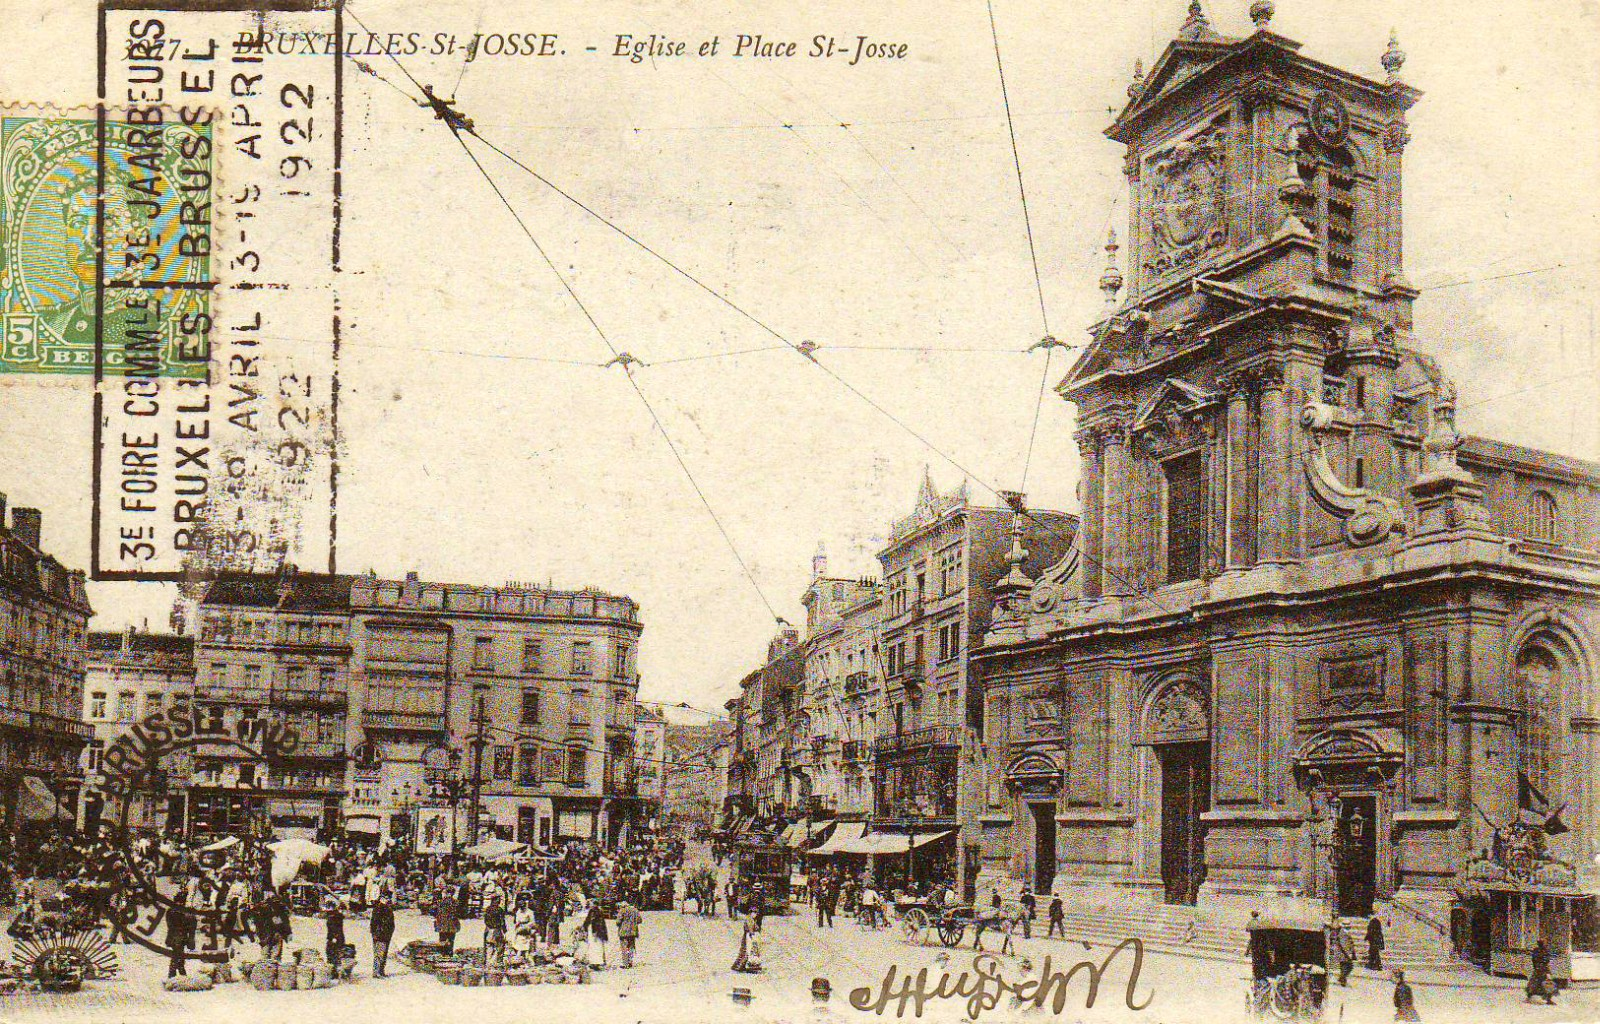 La place Saint-Josse et l\'église Saint-Josse, s.d. (Collection de Dexia Banque).